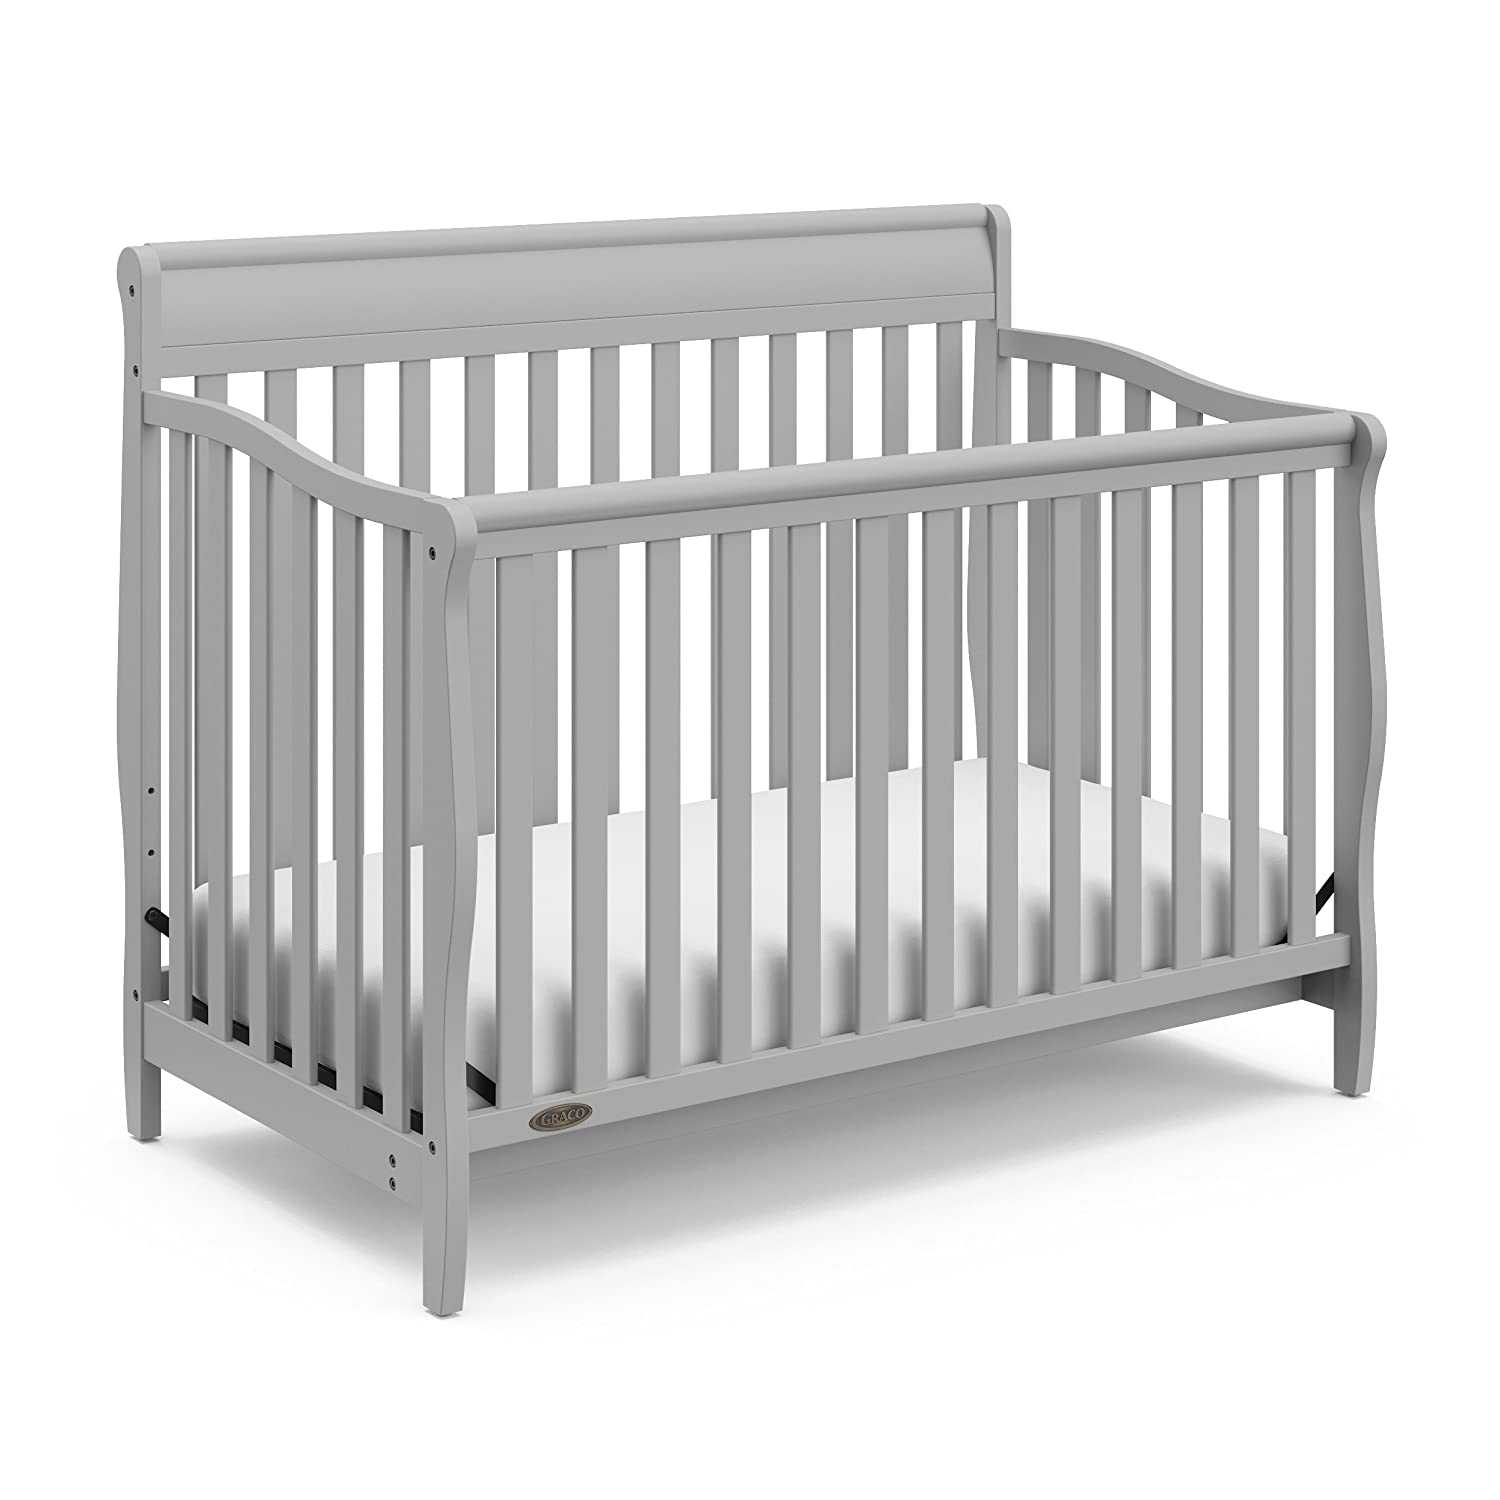 Graco Stanton 4-in-1 Convertible Crib, Pebble Gray 04530-66F